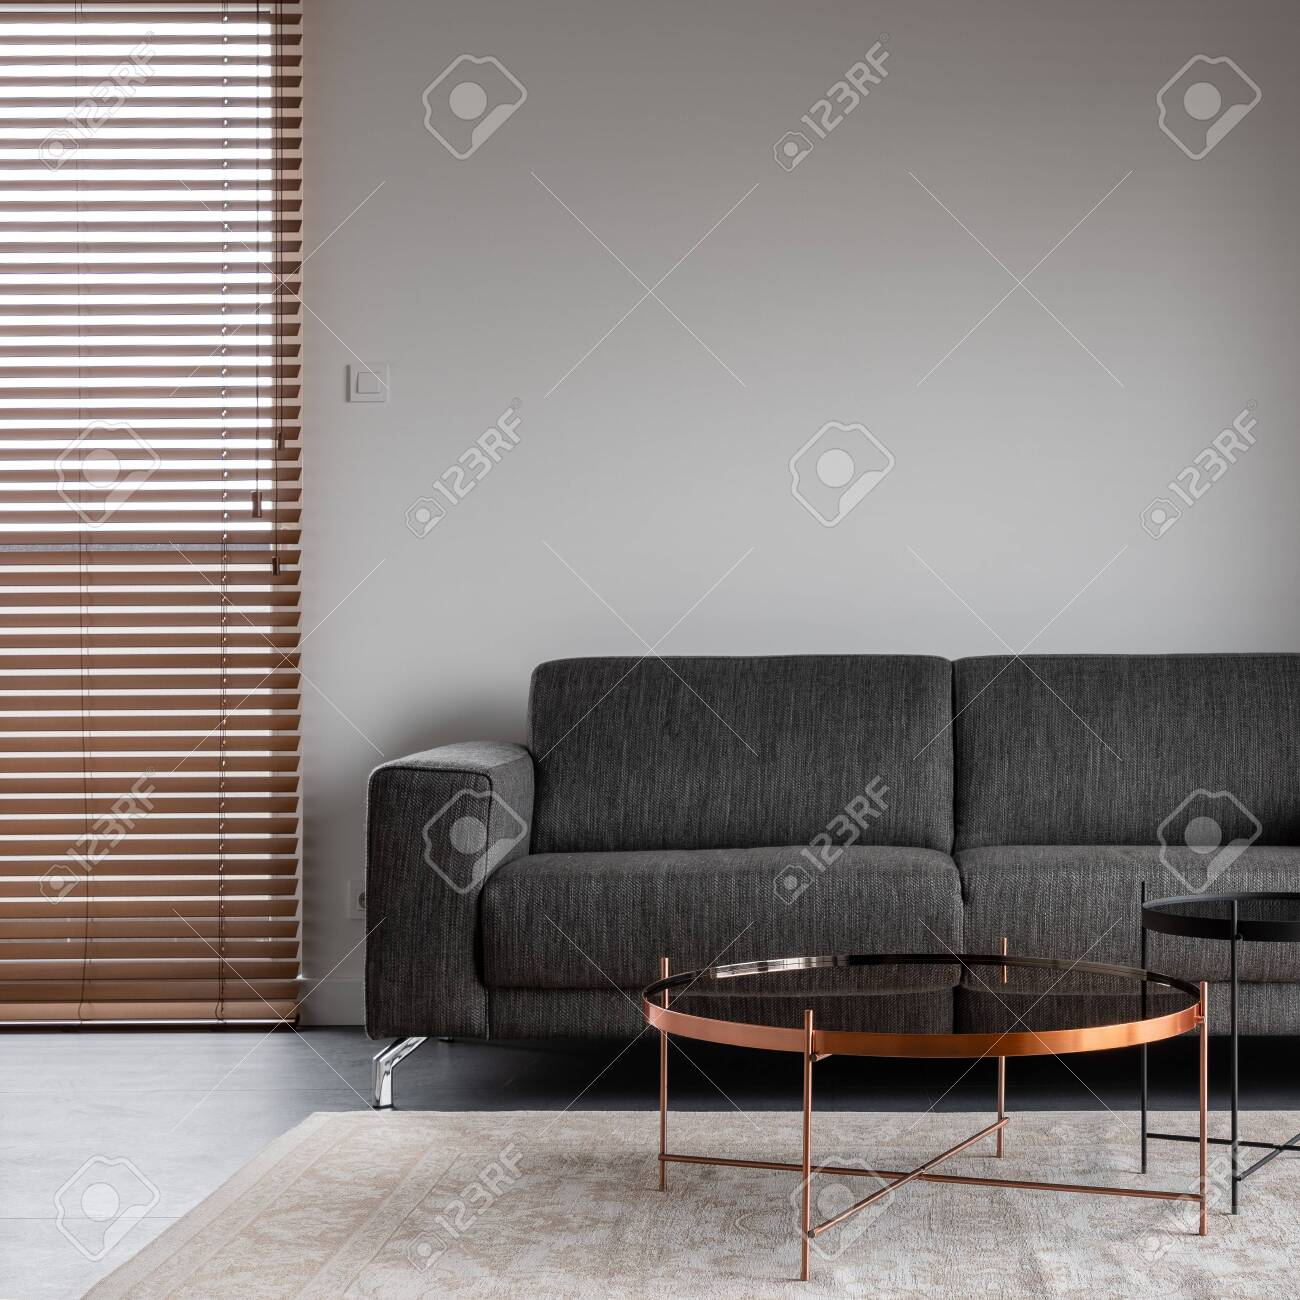 Living Room With Wooden Blinds Simple Gray Sofa And Copper Coffee Stock Photo Picture And Royalty Free Image Image 126255673